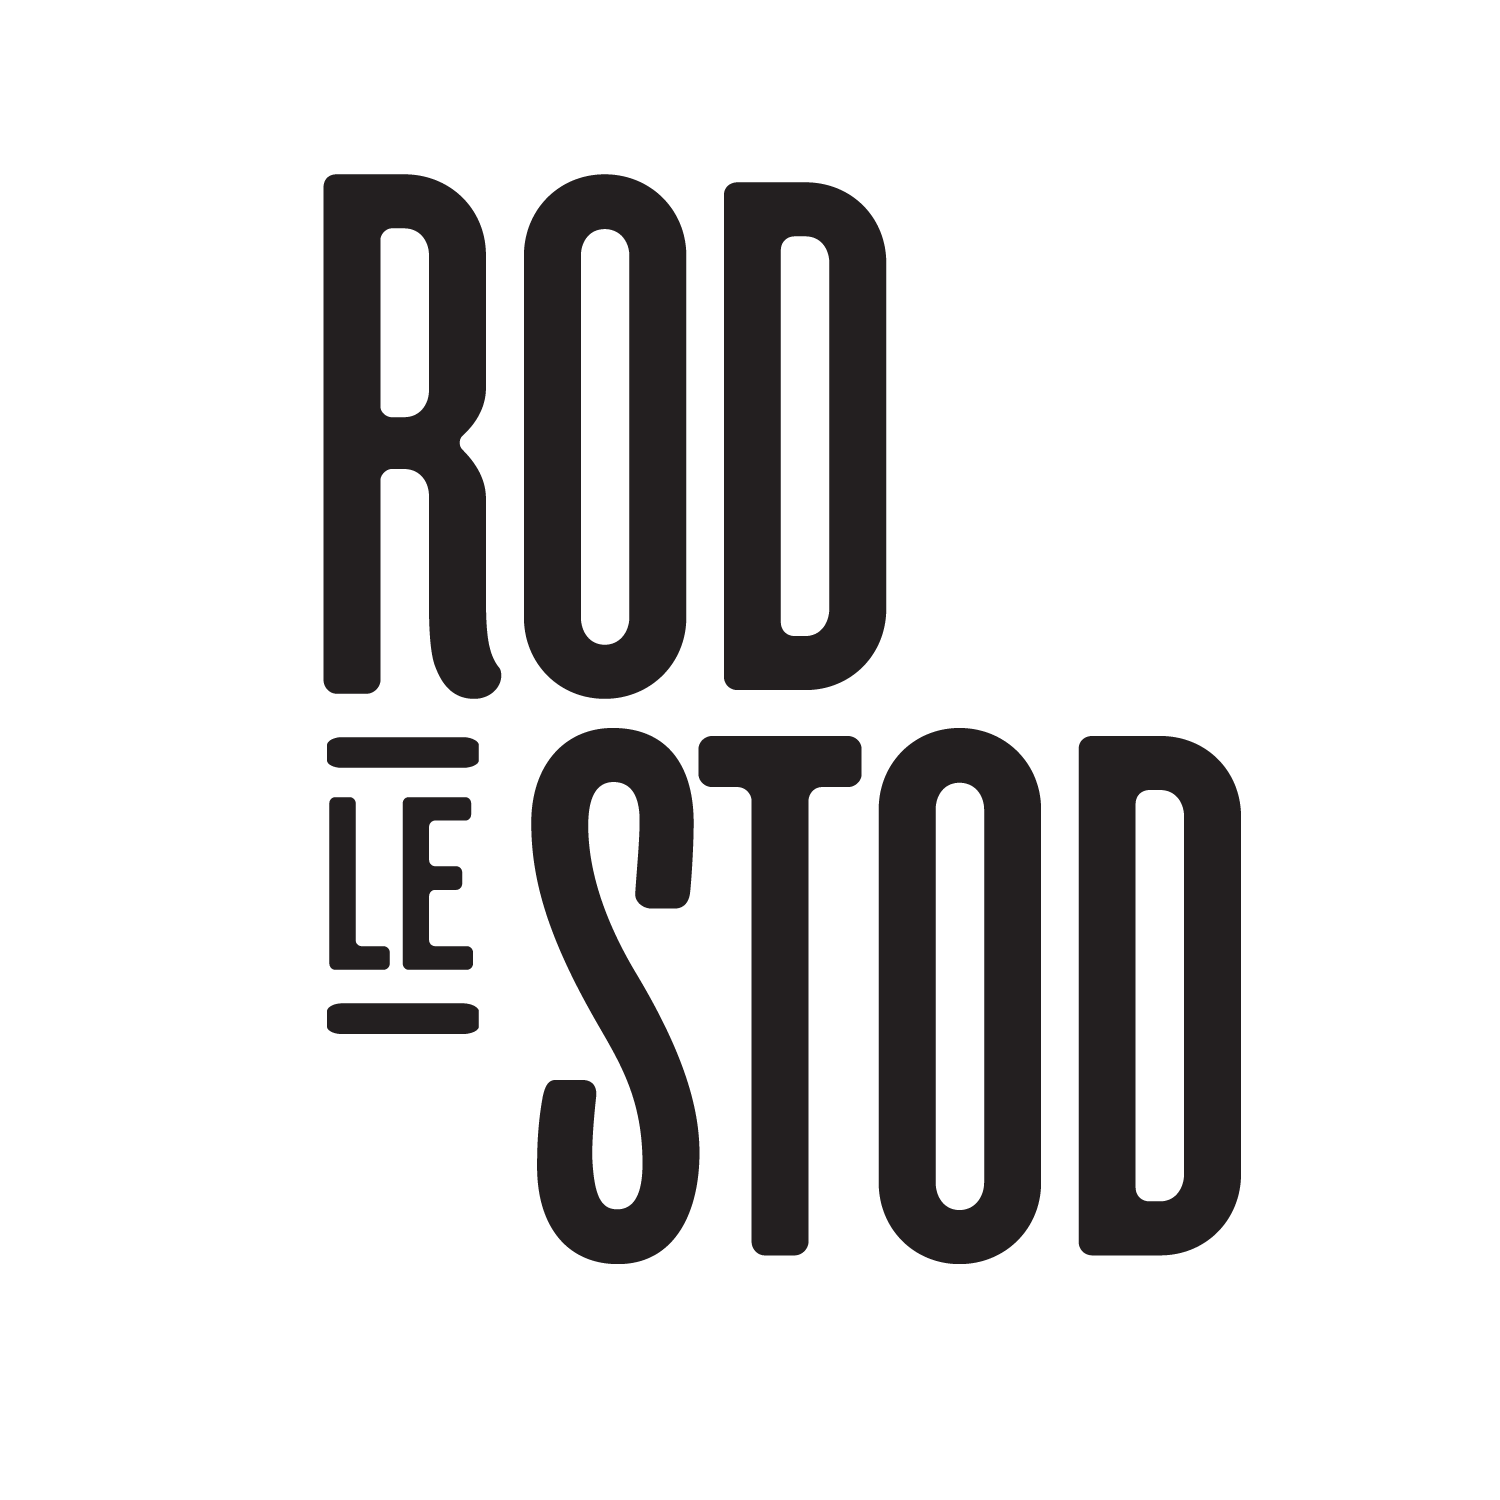 Site officiel de Rod le Stod